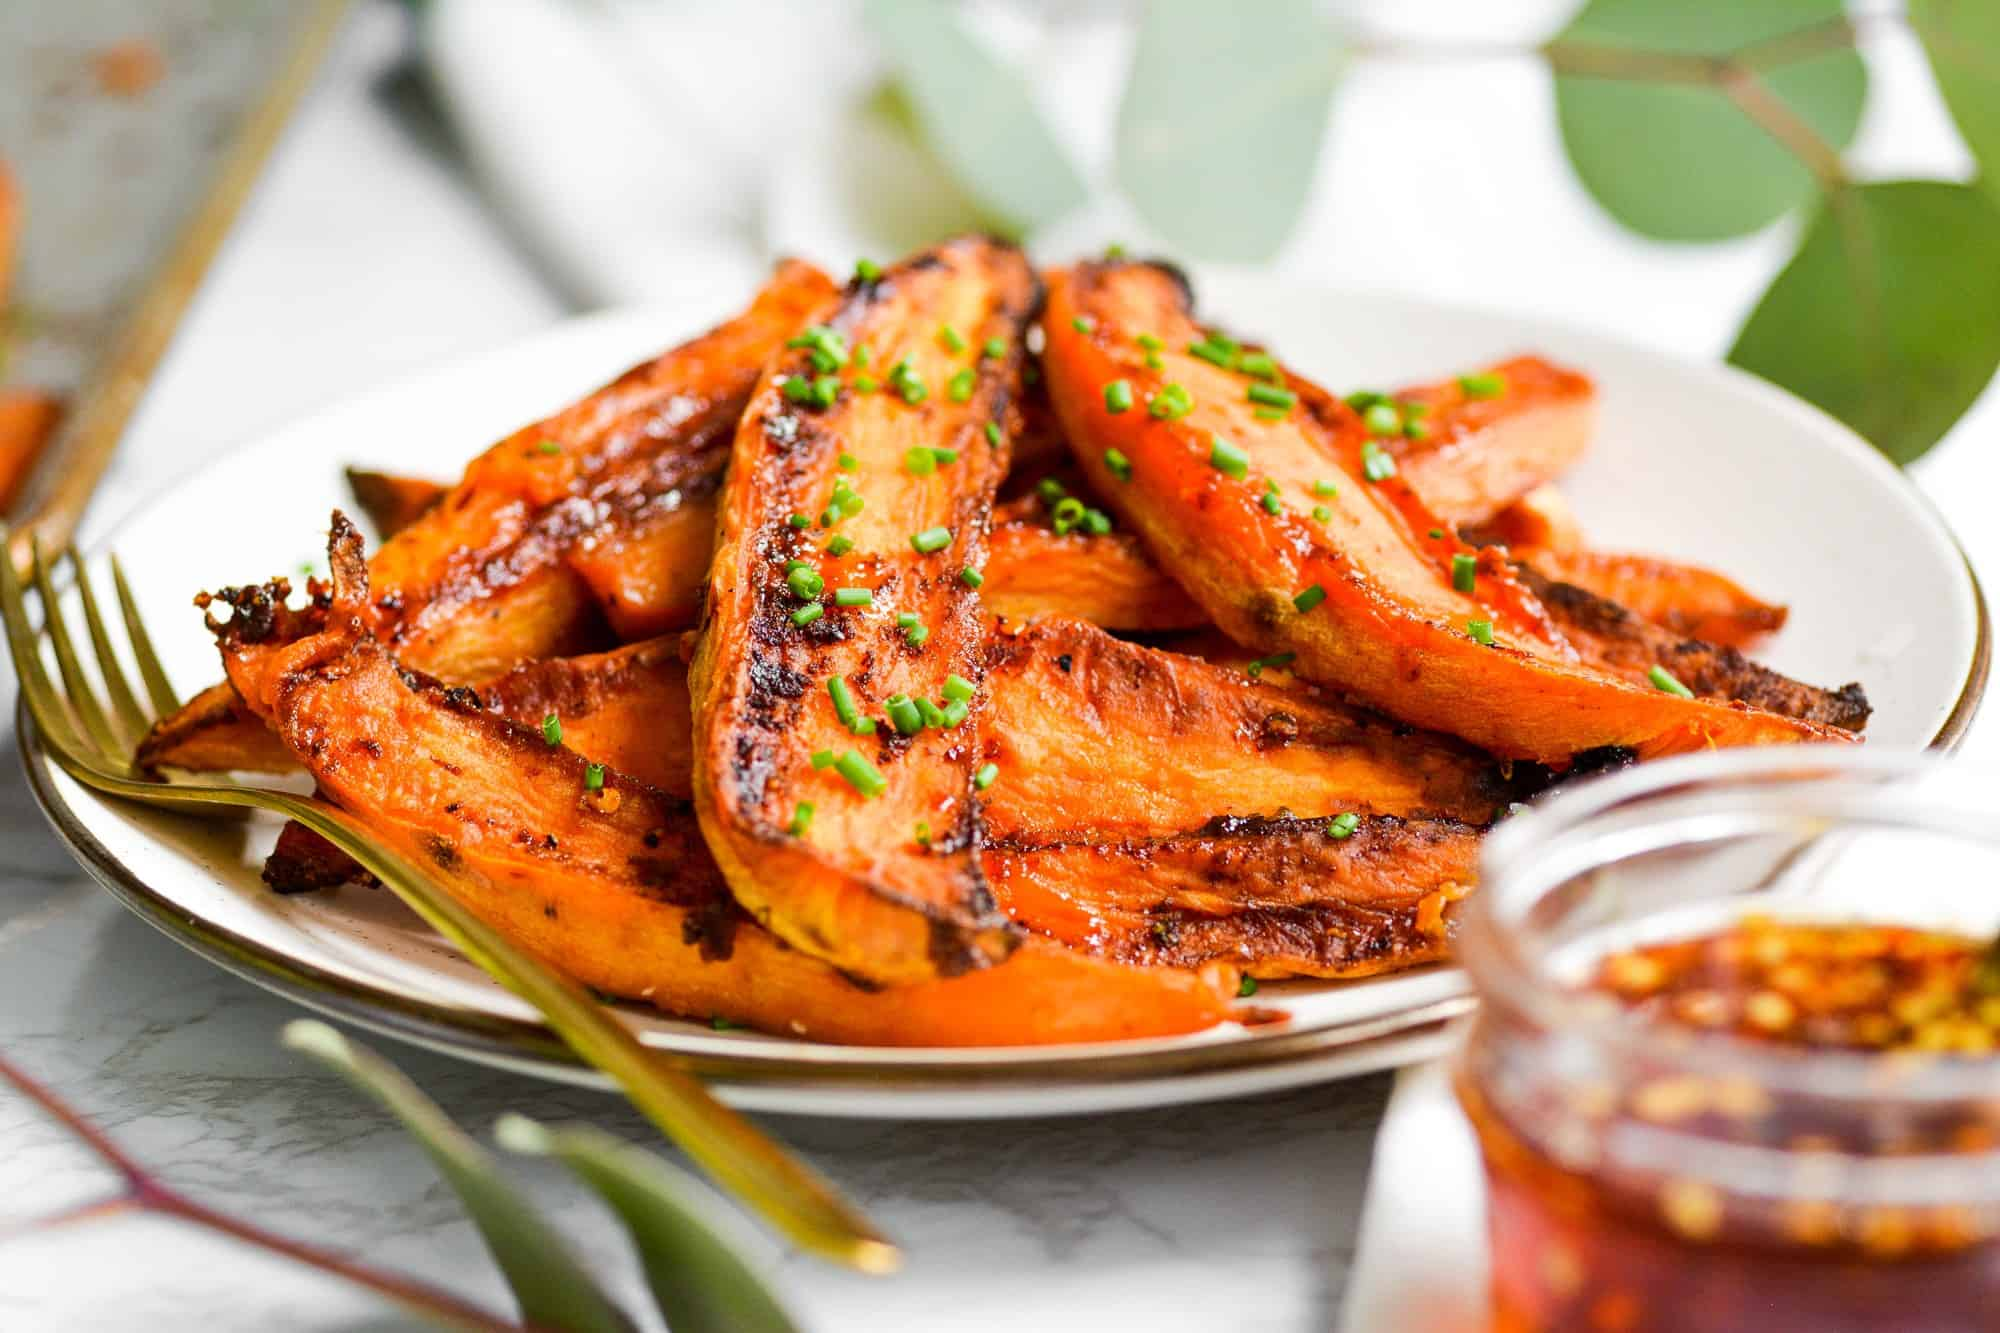 Roasted Sweet Potato Wedges with Hot Honey Butter